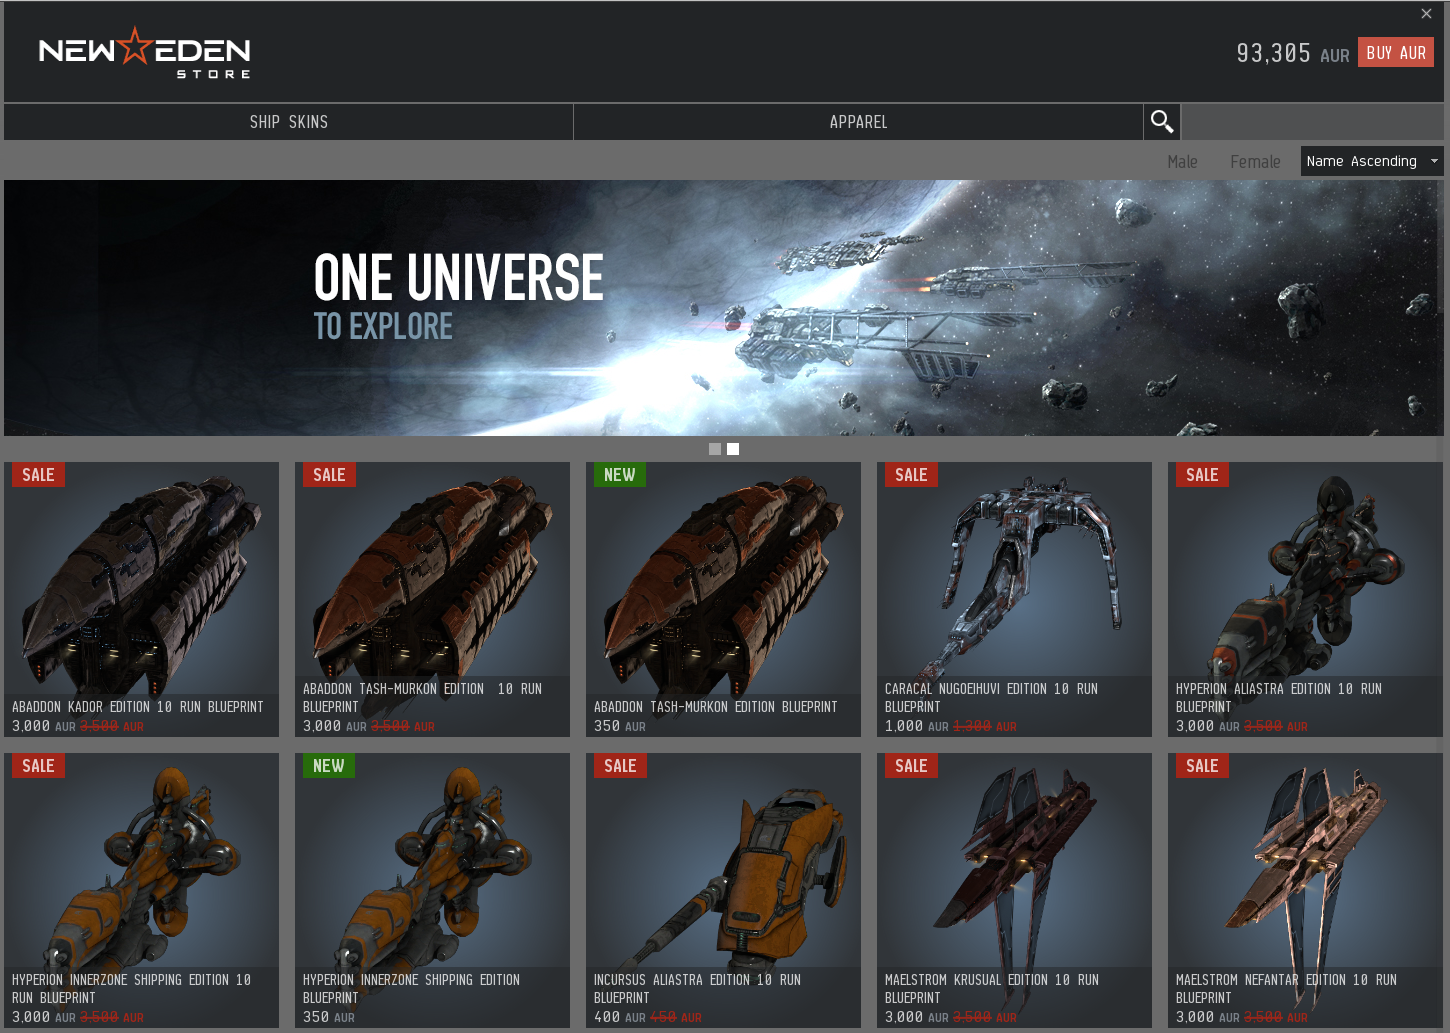 The New Eden Store Eve Online